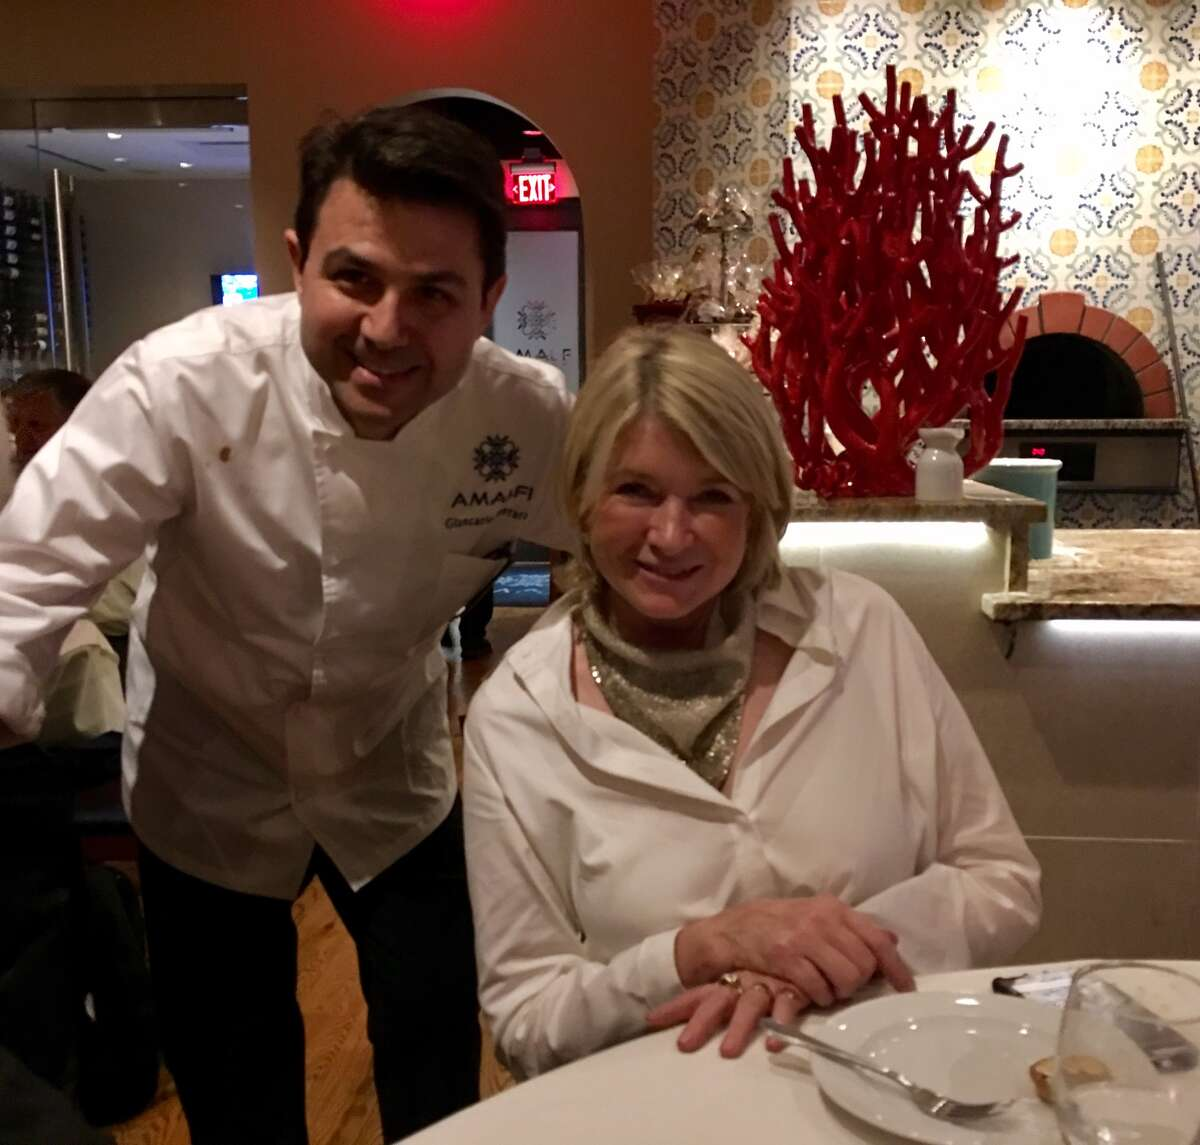 Chef/owner Giancarlo Ferrara of Amalfi Ristorante Italiano & Bar where cookbook author and food television star Martha Stewart dined on Saturday.